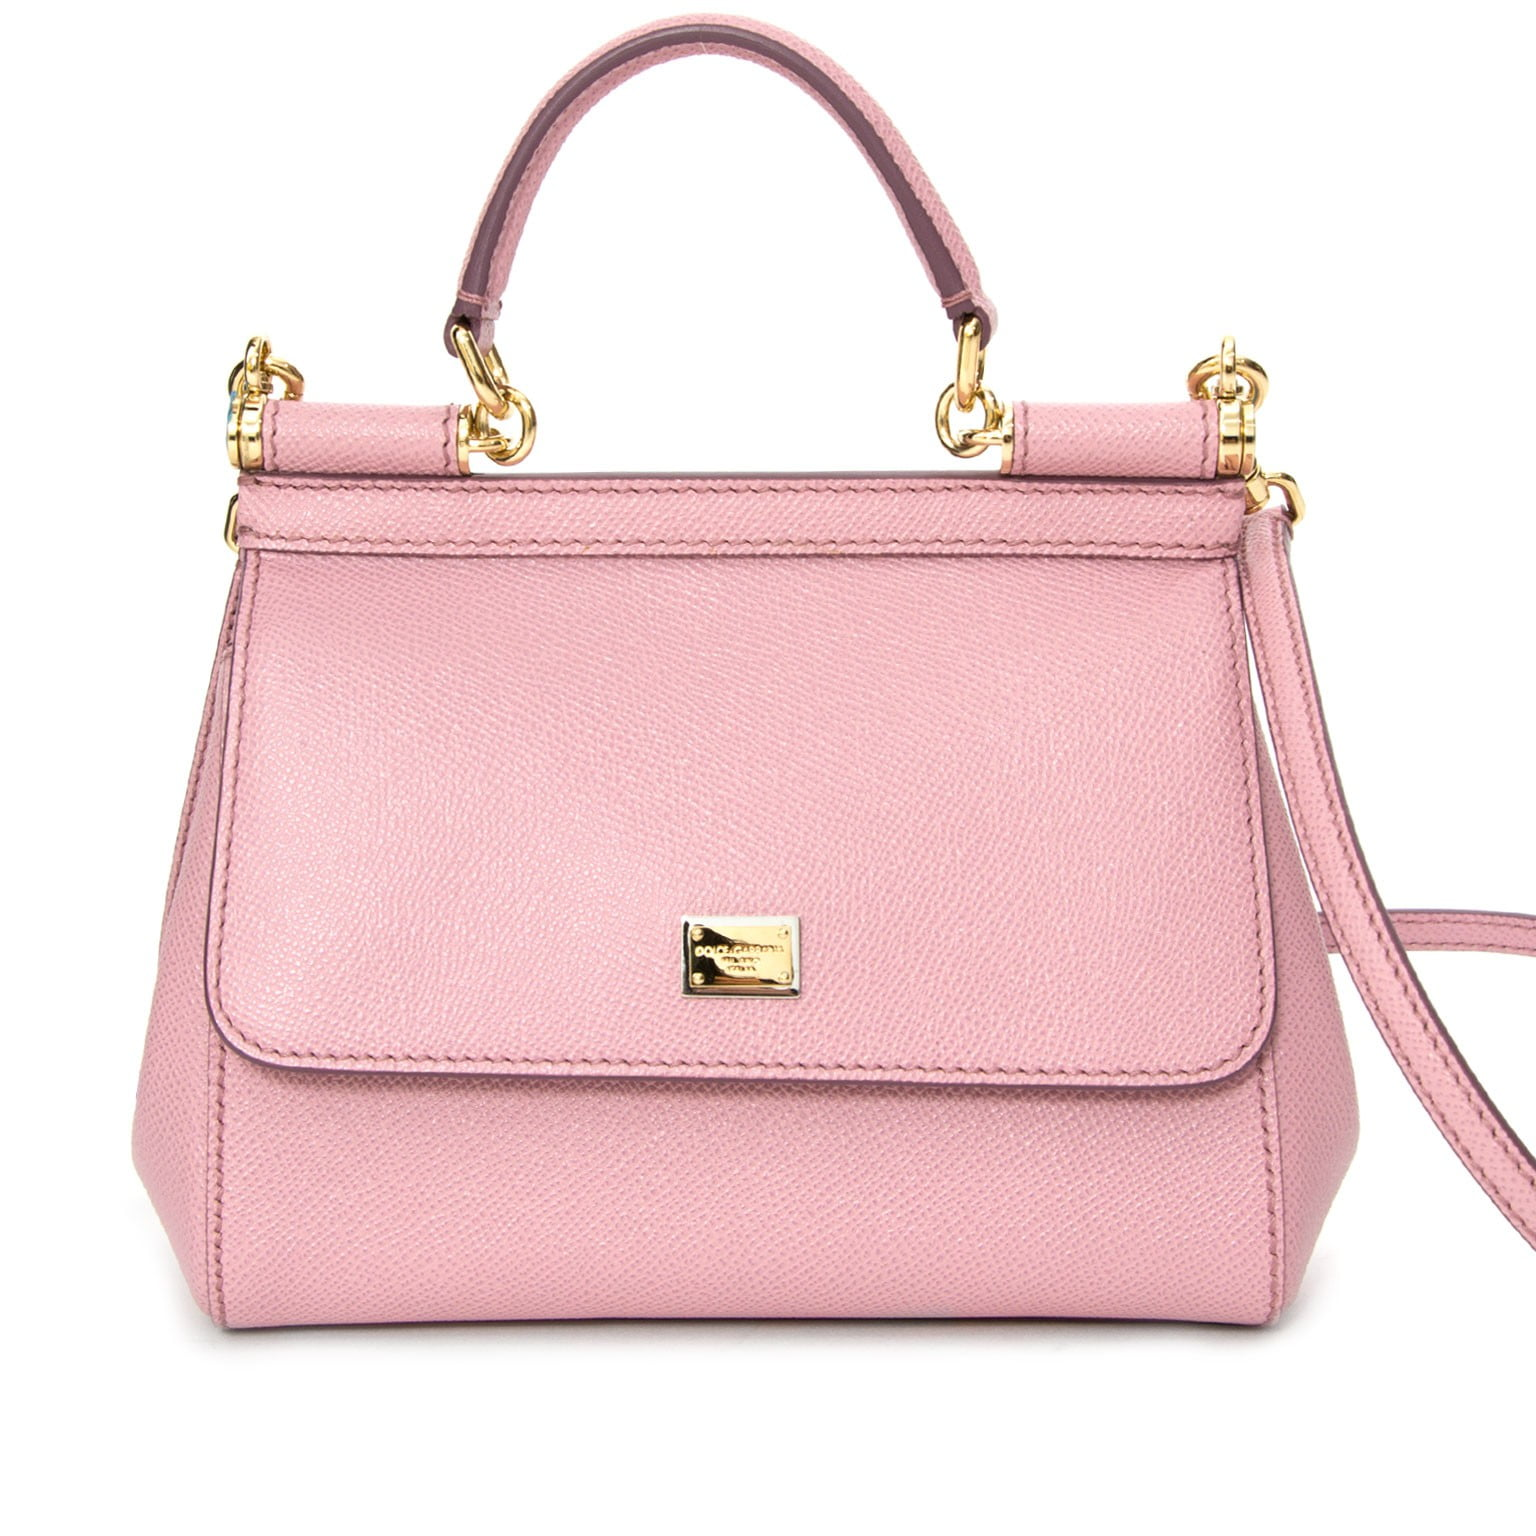 ecd28282cb You know PurseBop absolutely loves top handle bags, so naturally the Dolce  & Gabbana Miss Sicily is another bag we can't help but admire.